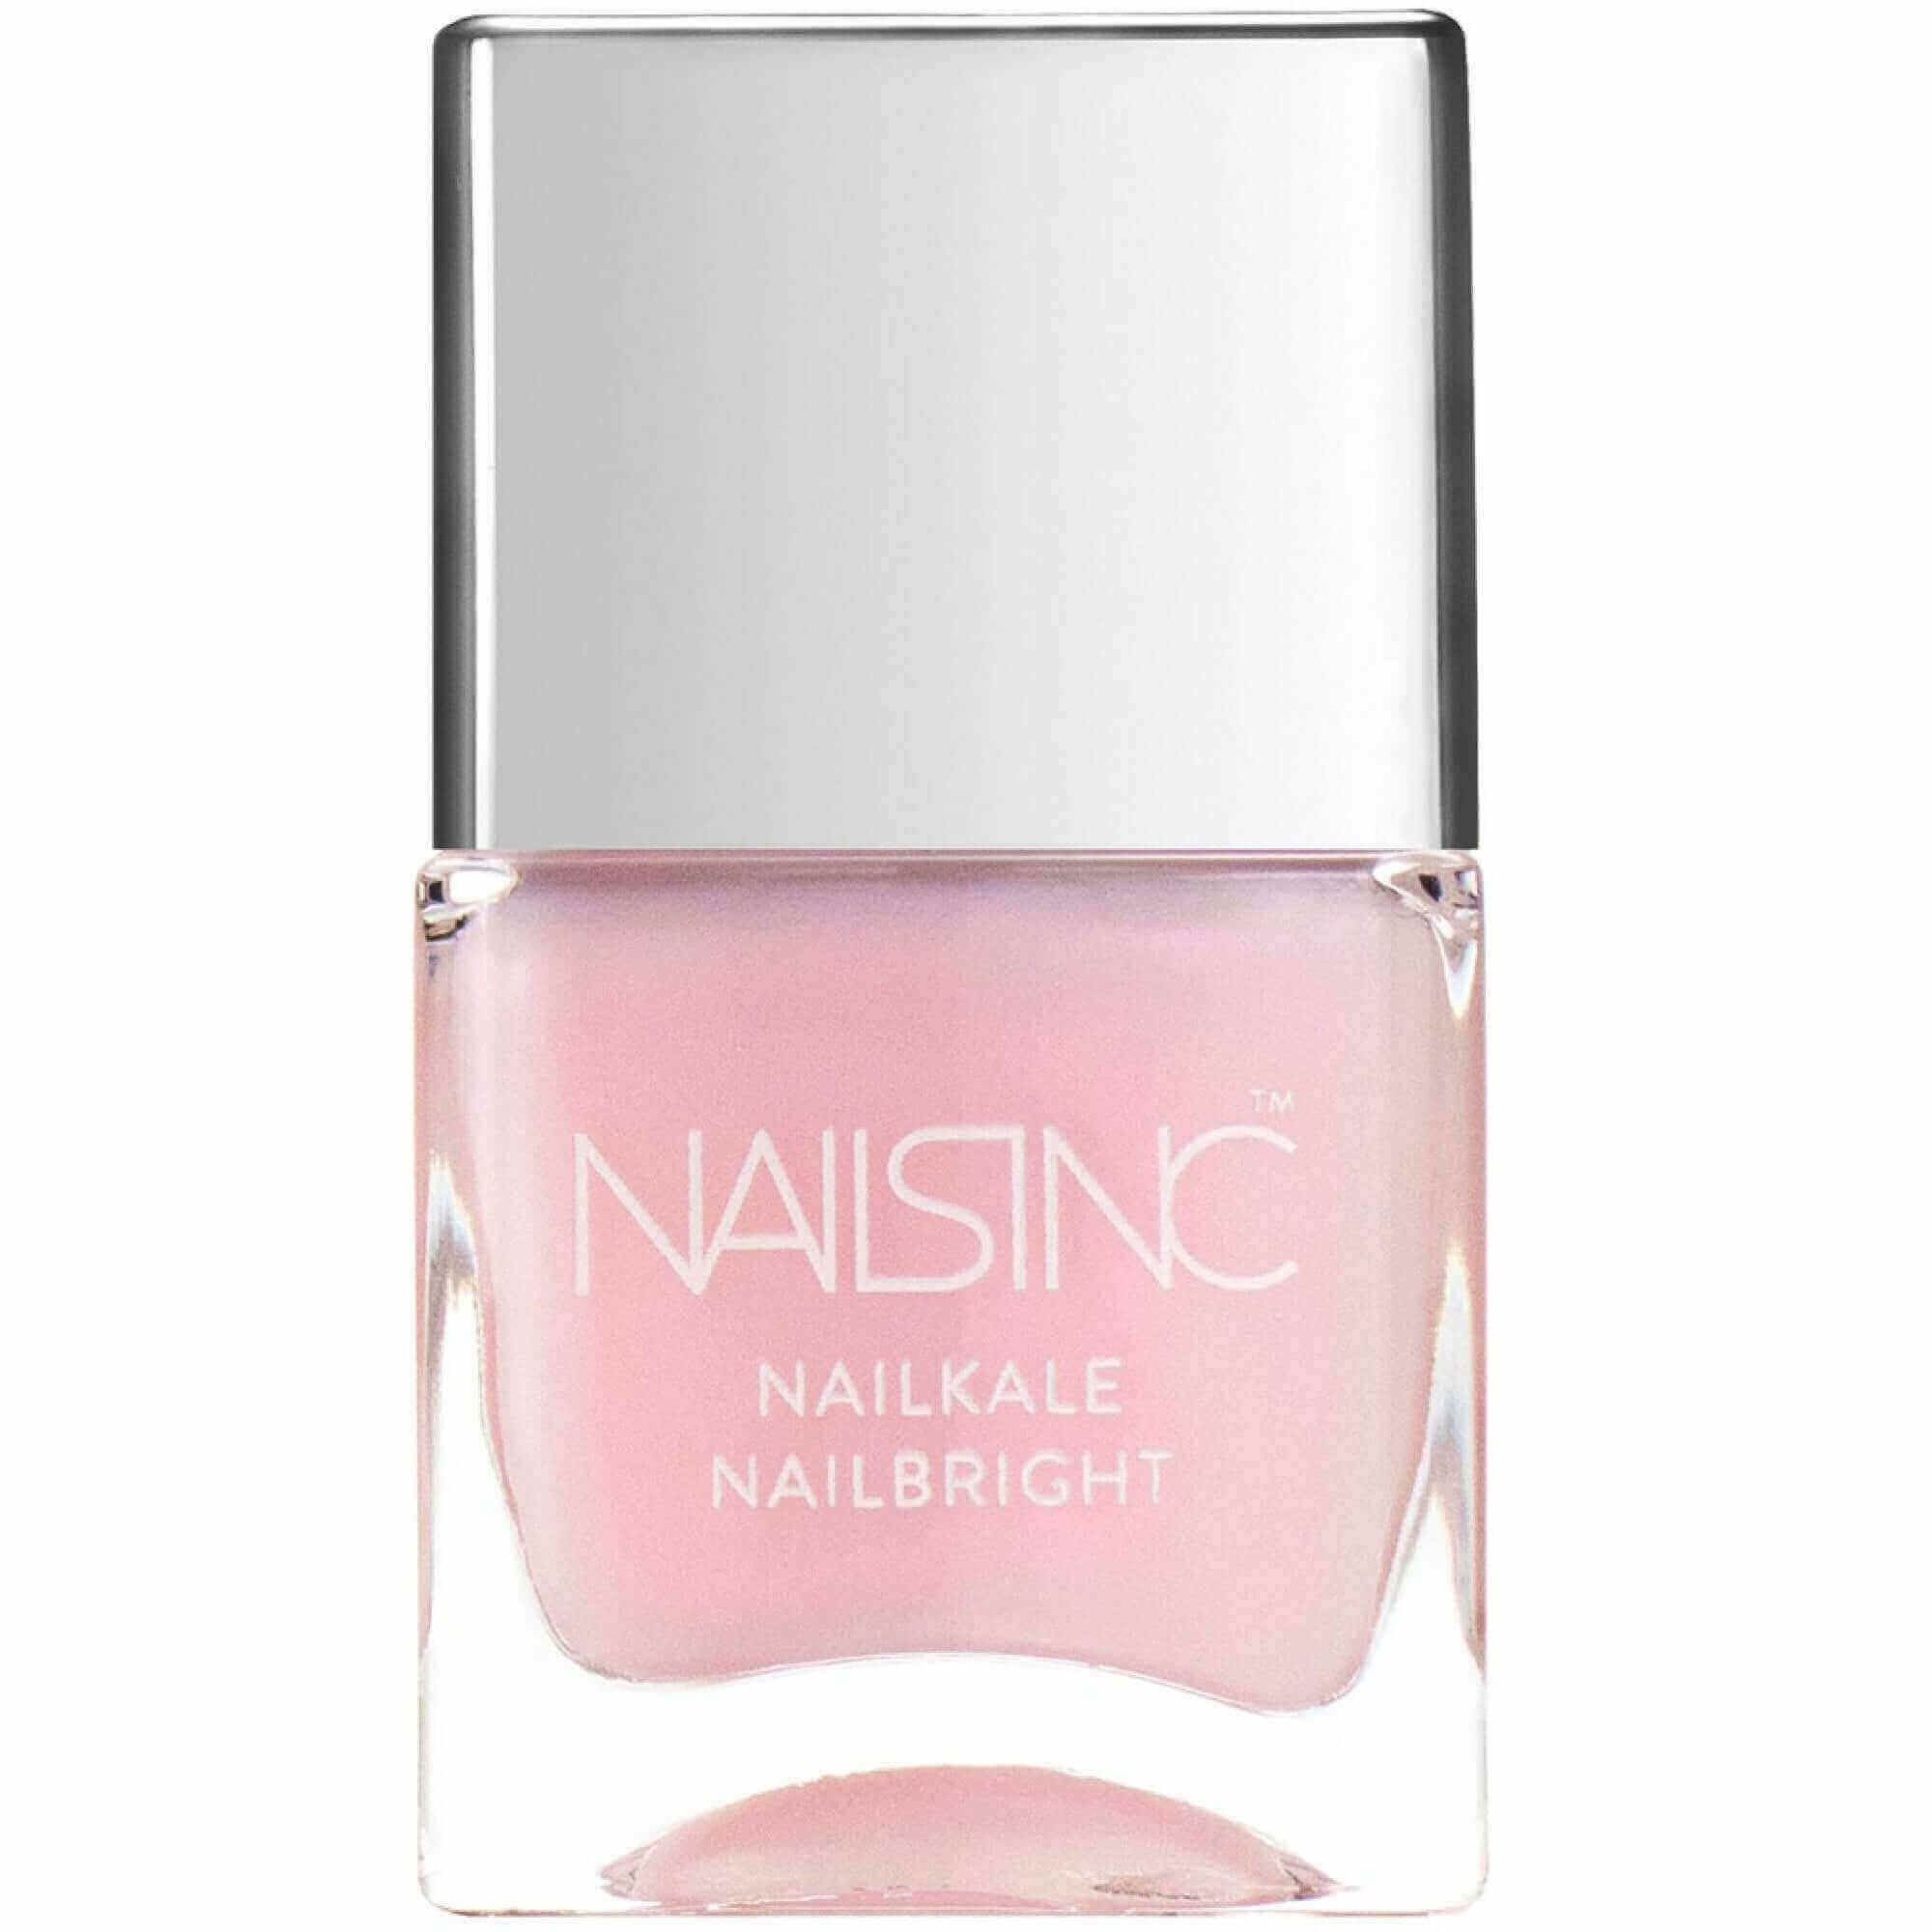 Nails inc NailKale NailBright - Chelsea Embankment Mews (7663) 14ml